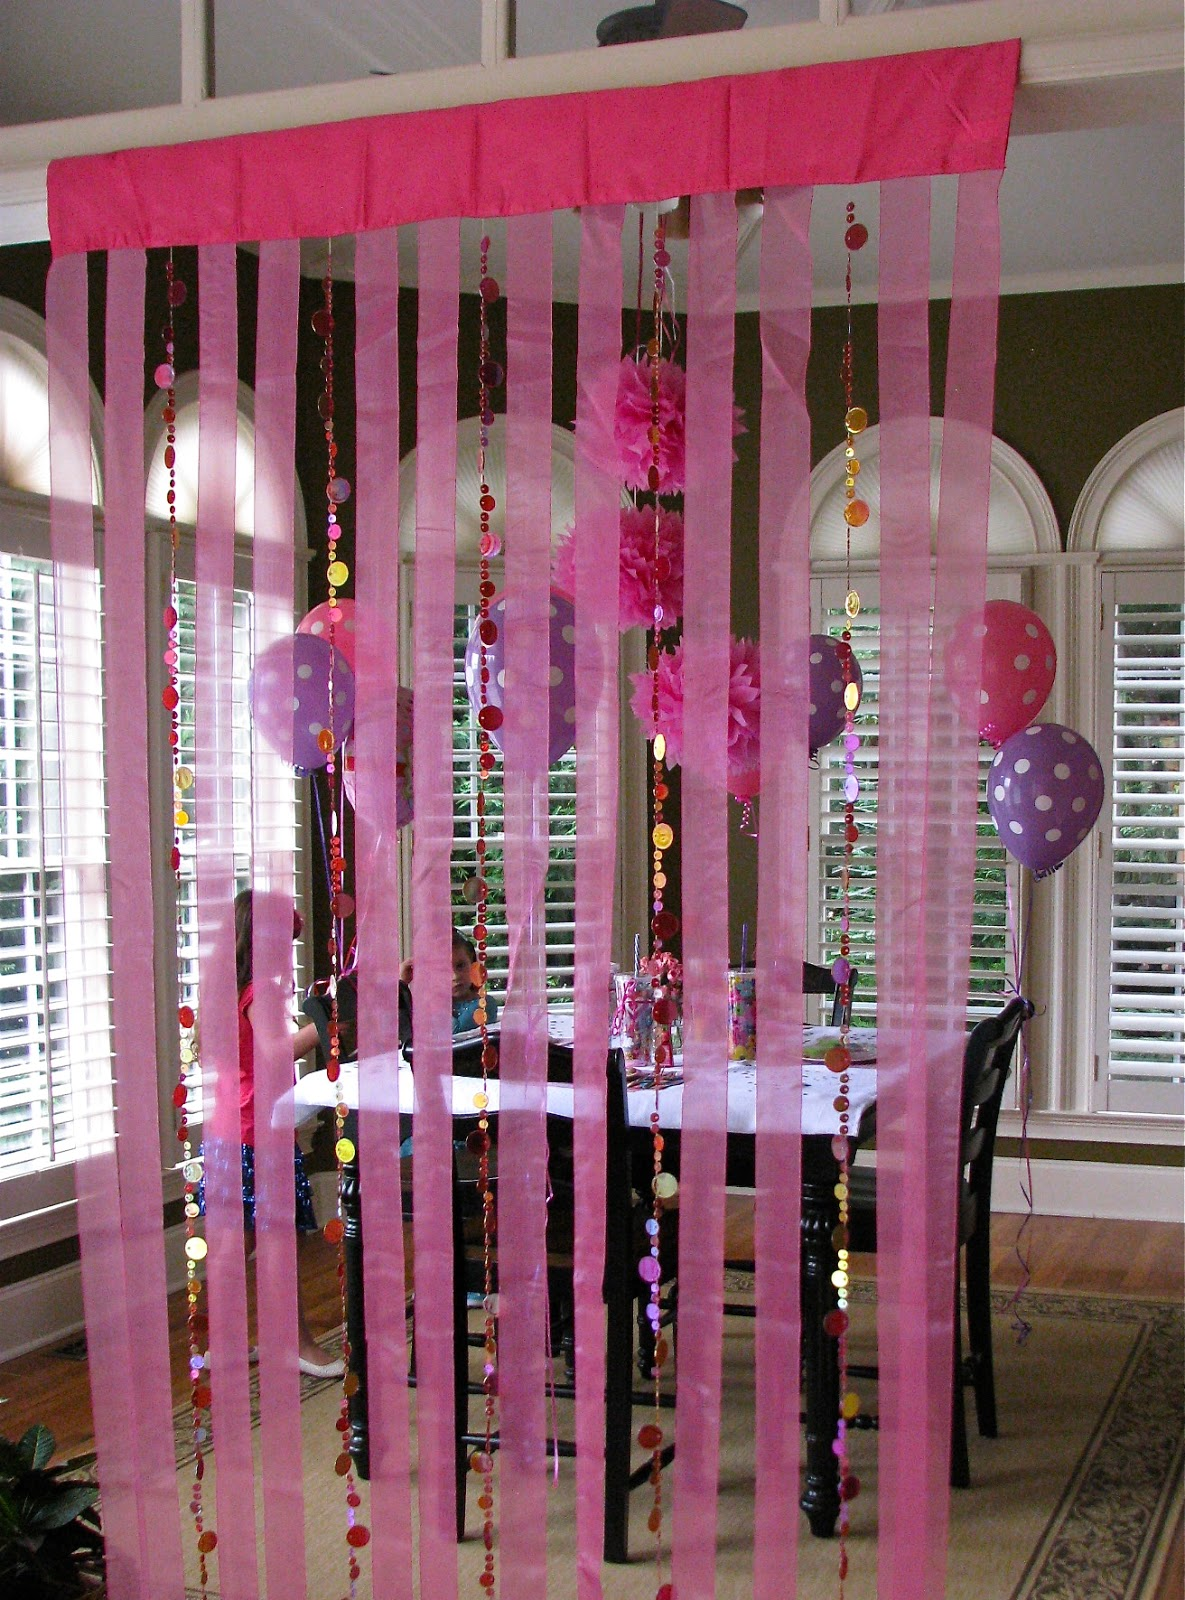 Homemadeville Your Place For Homemade Inspiration Girl 39 S Birthday Party Decorations